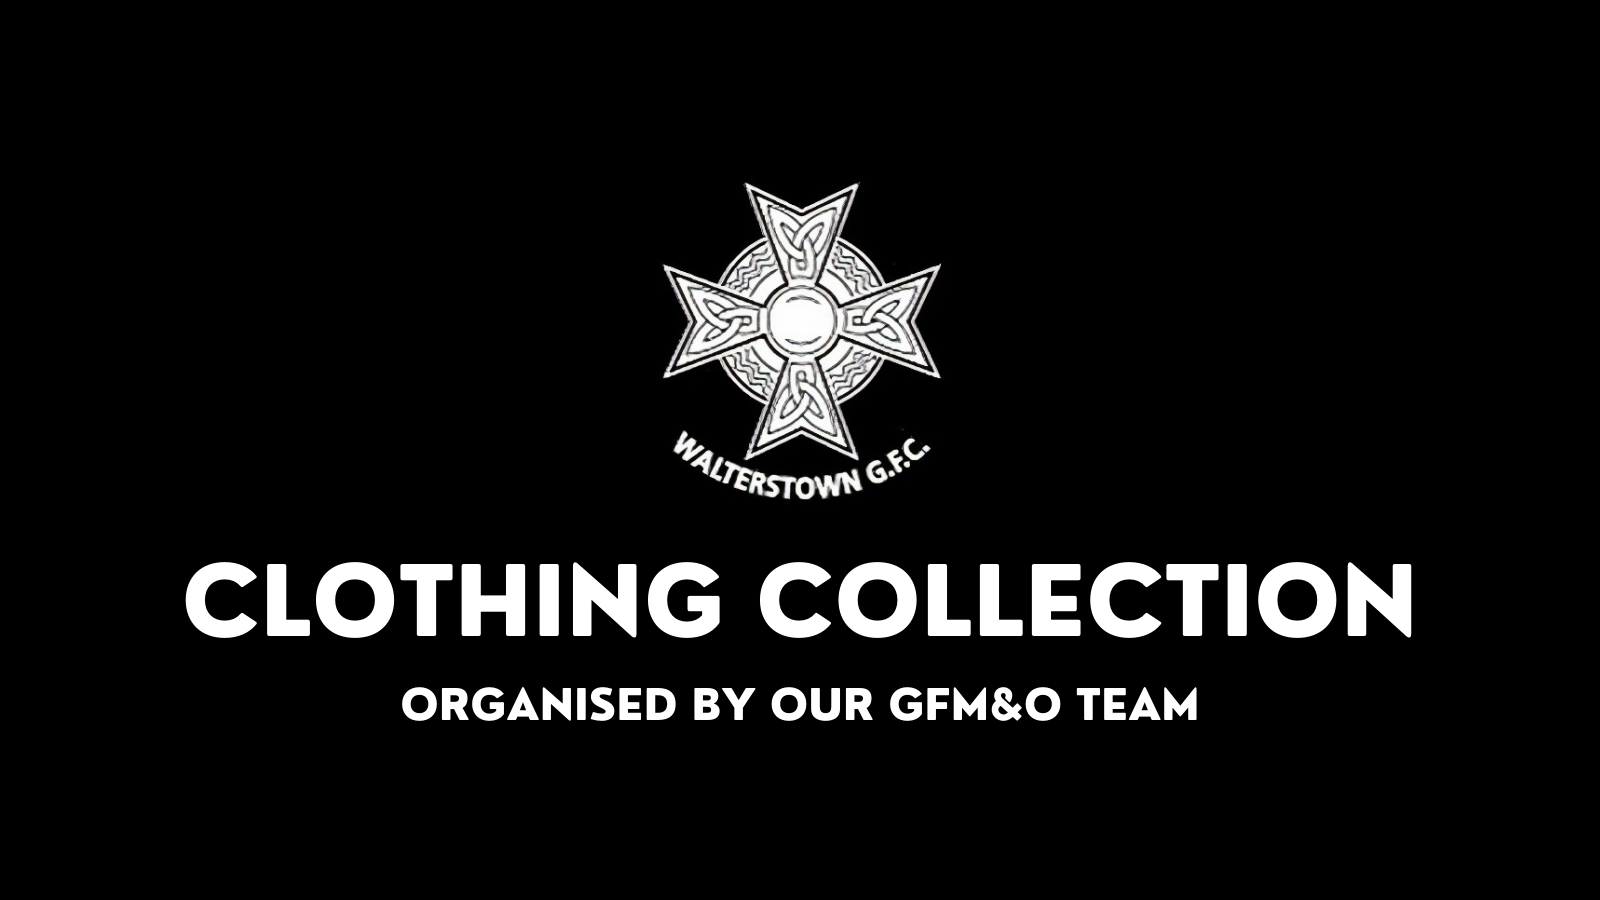 Our Gaelic for Mother & Others team are having a clothing collection